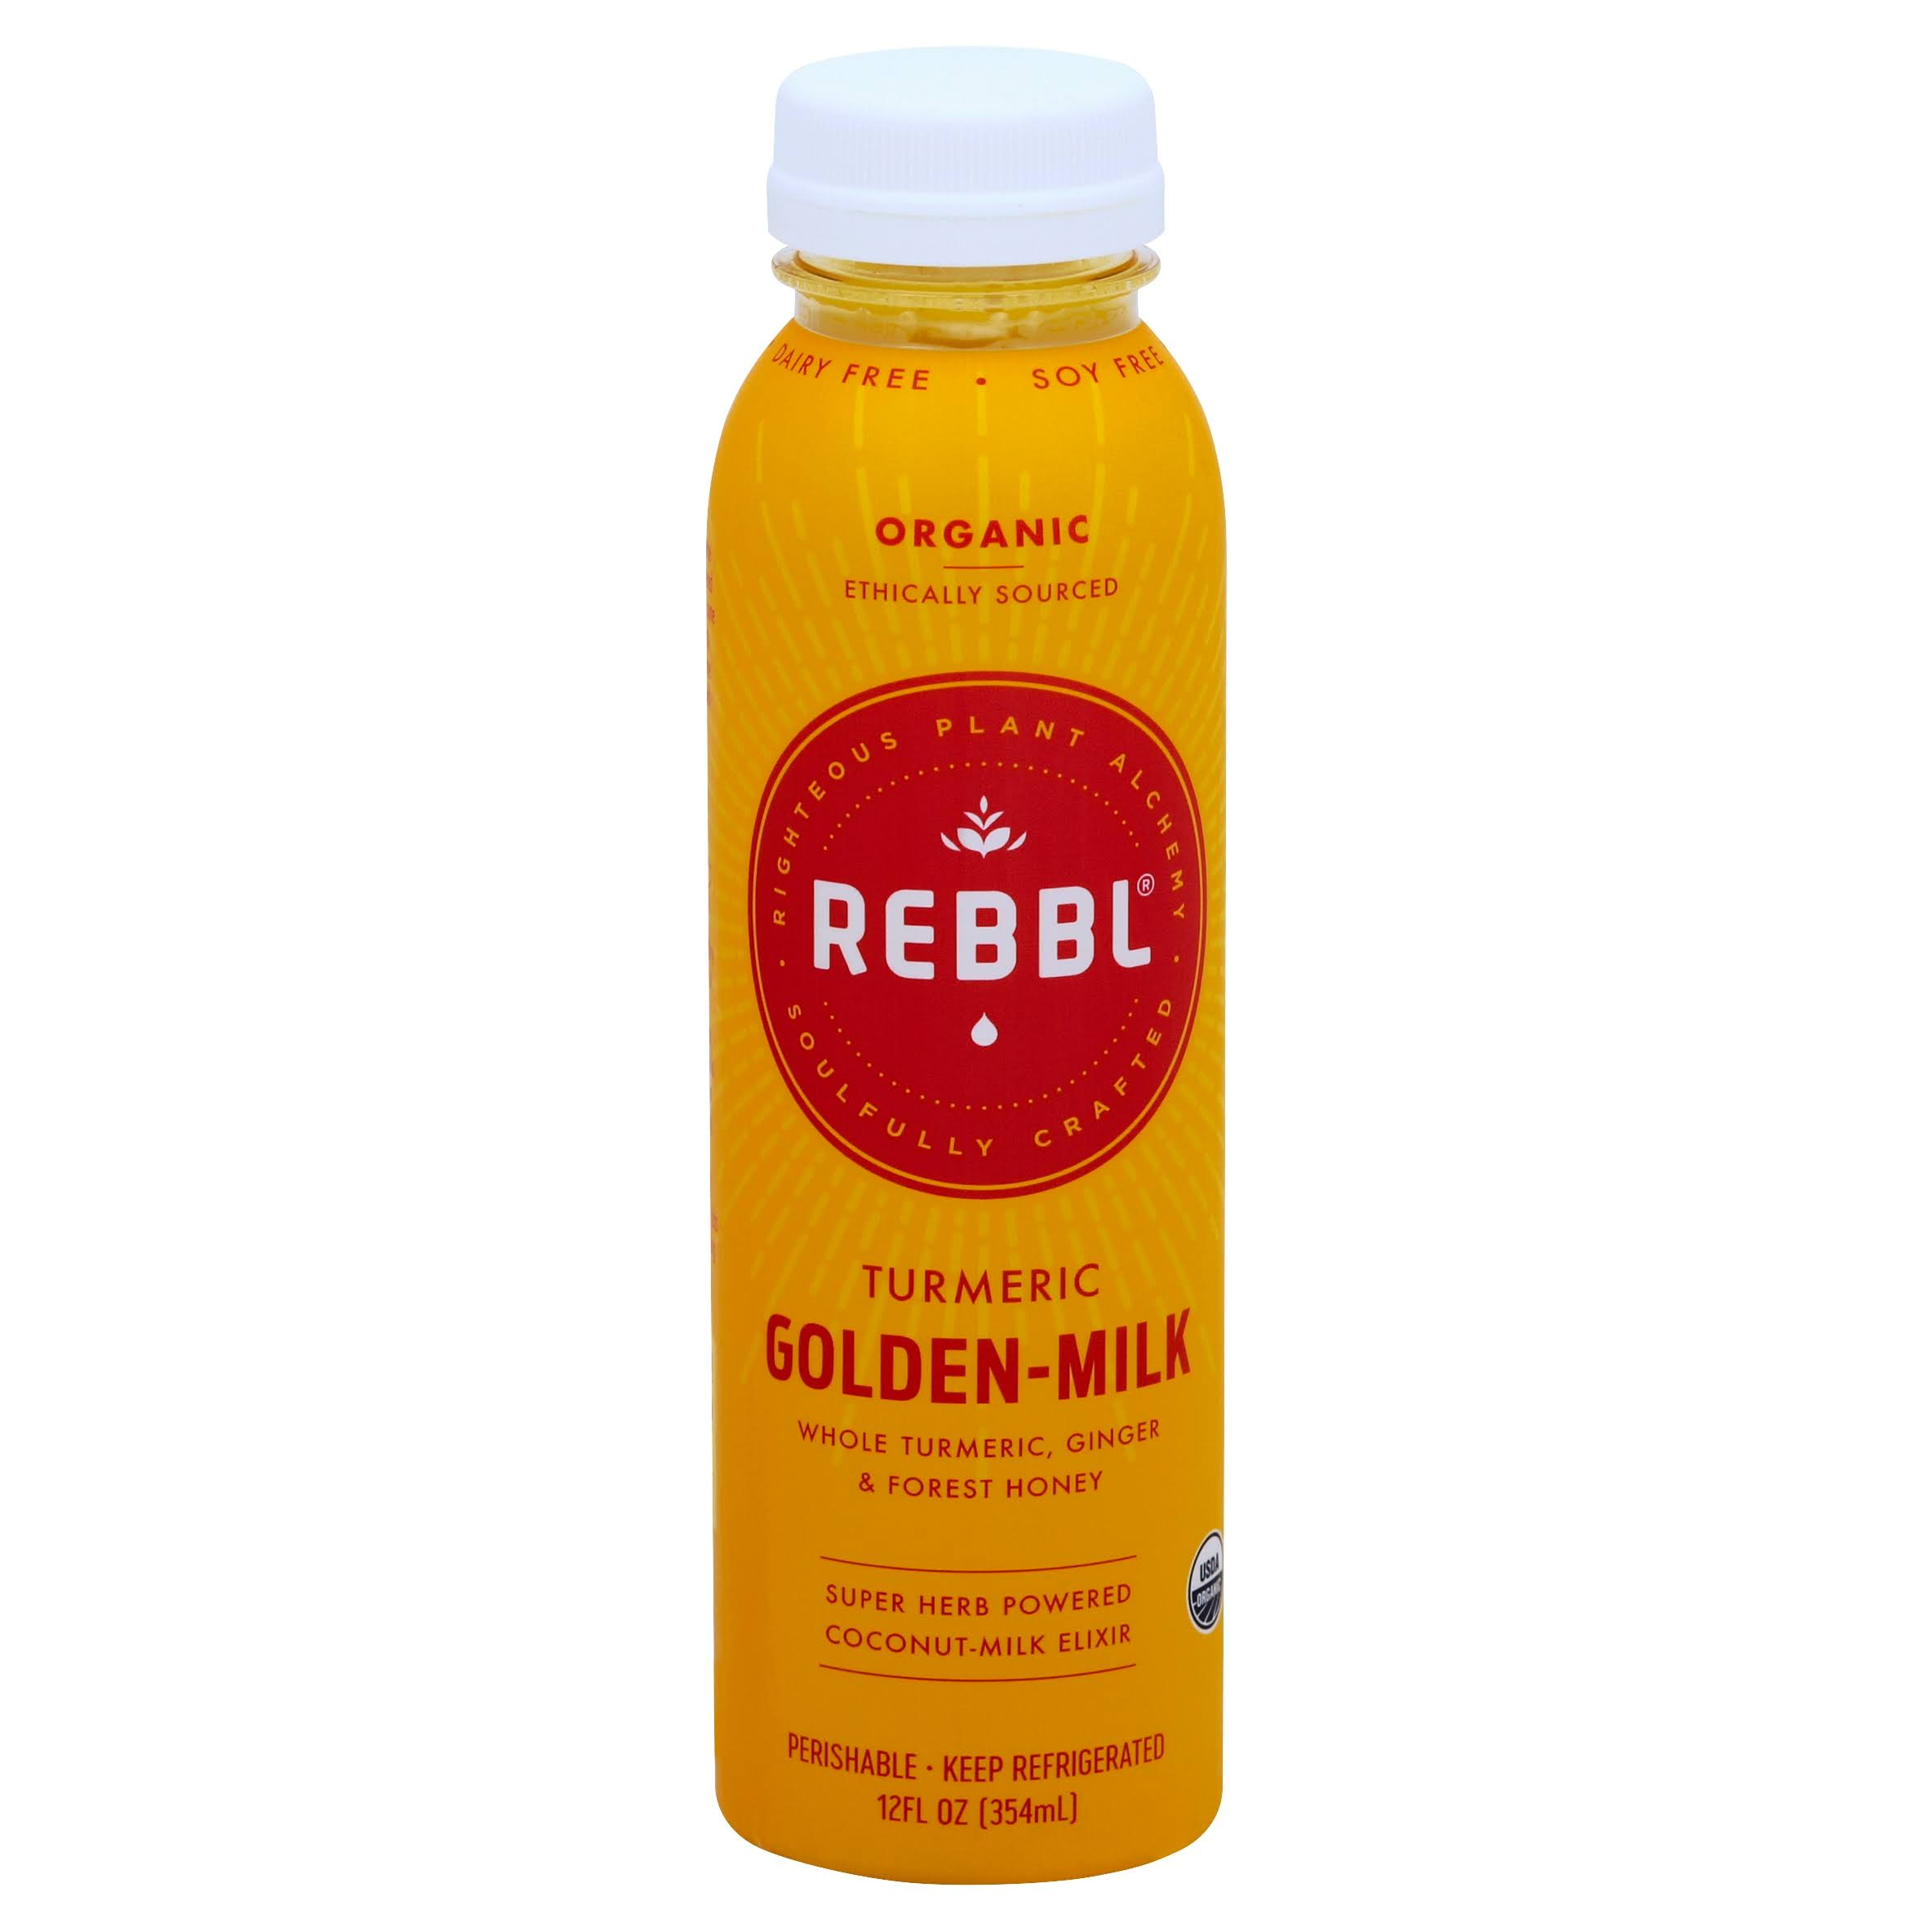 Rebbl Organic Turmeric Golden-Milk Revitalizing Elixir - 12oz